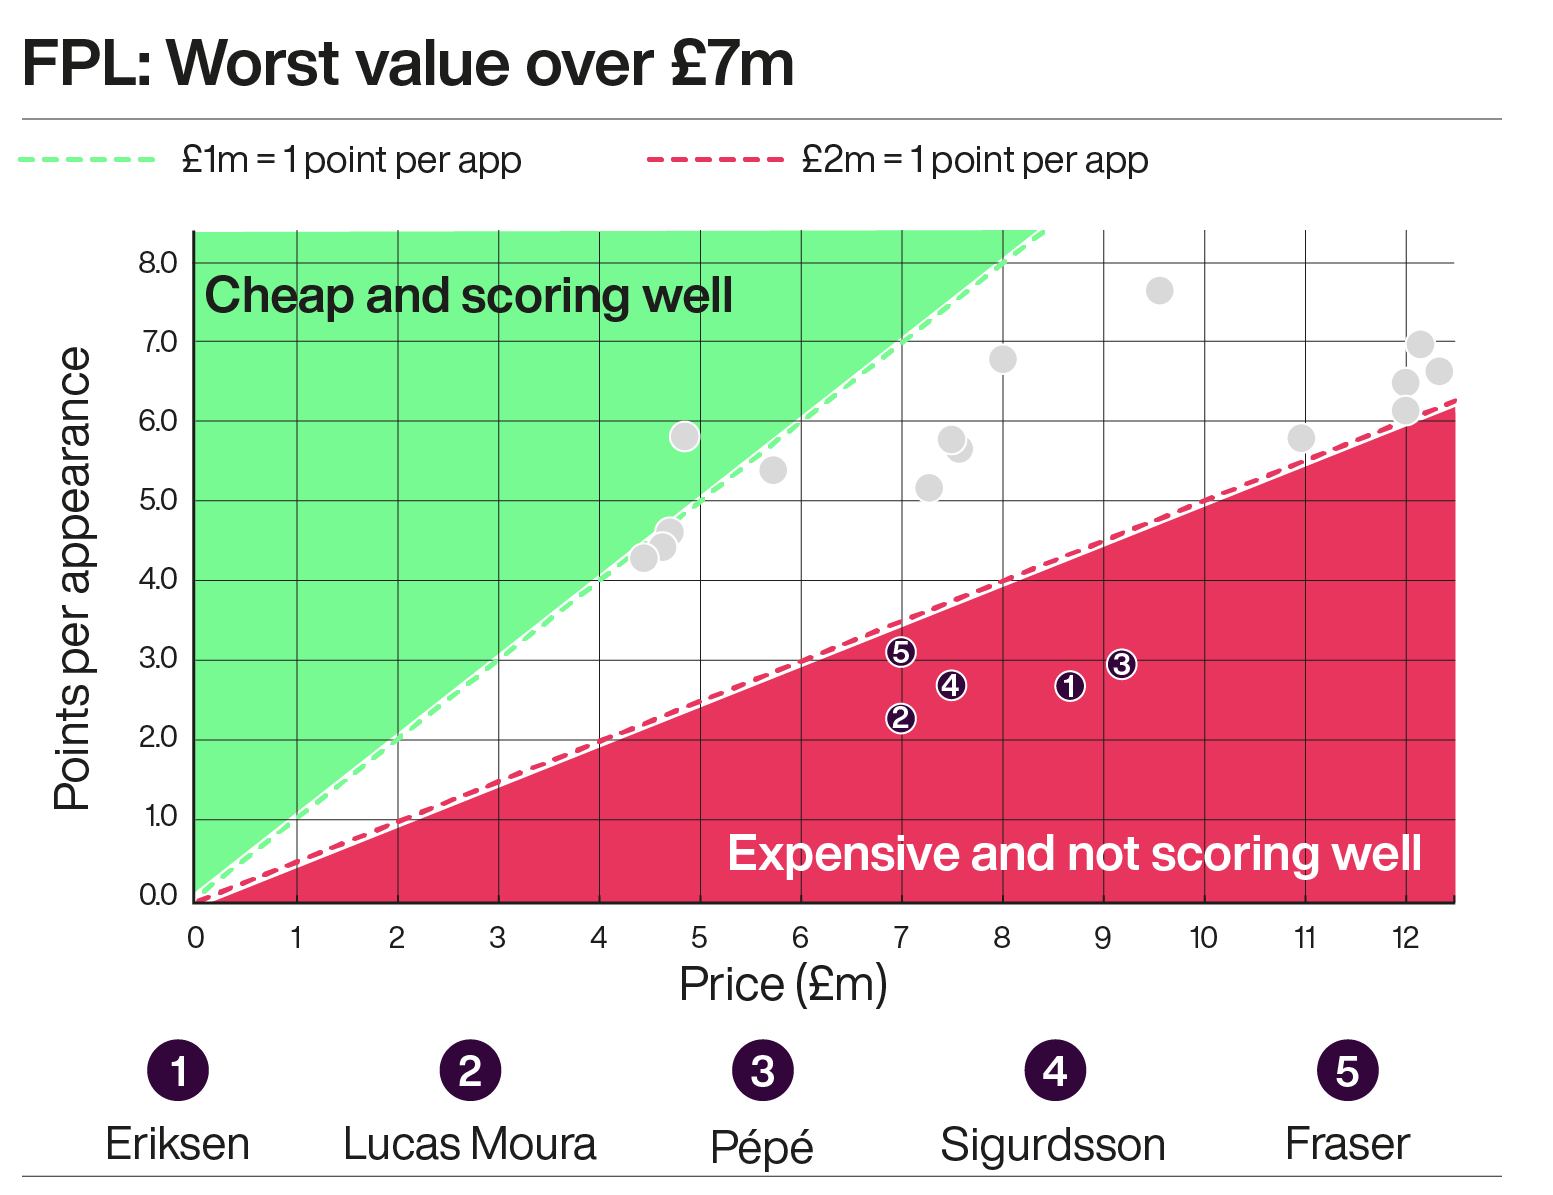 A graph showing the worst value Fantasy Premier League footballers who cost more than £7m this season